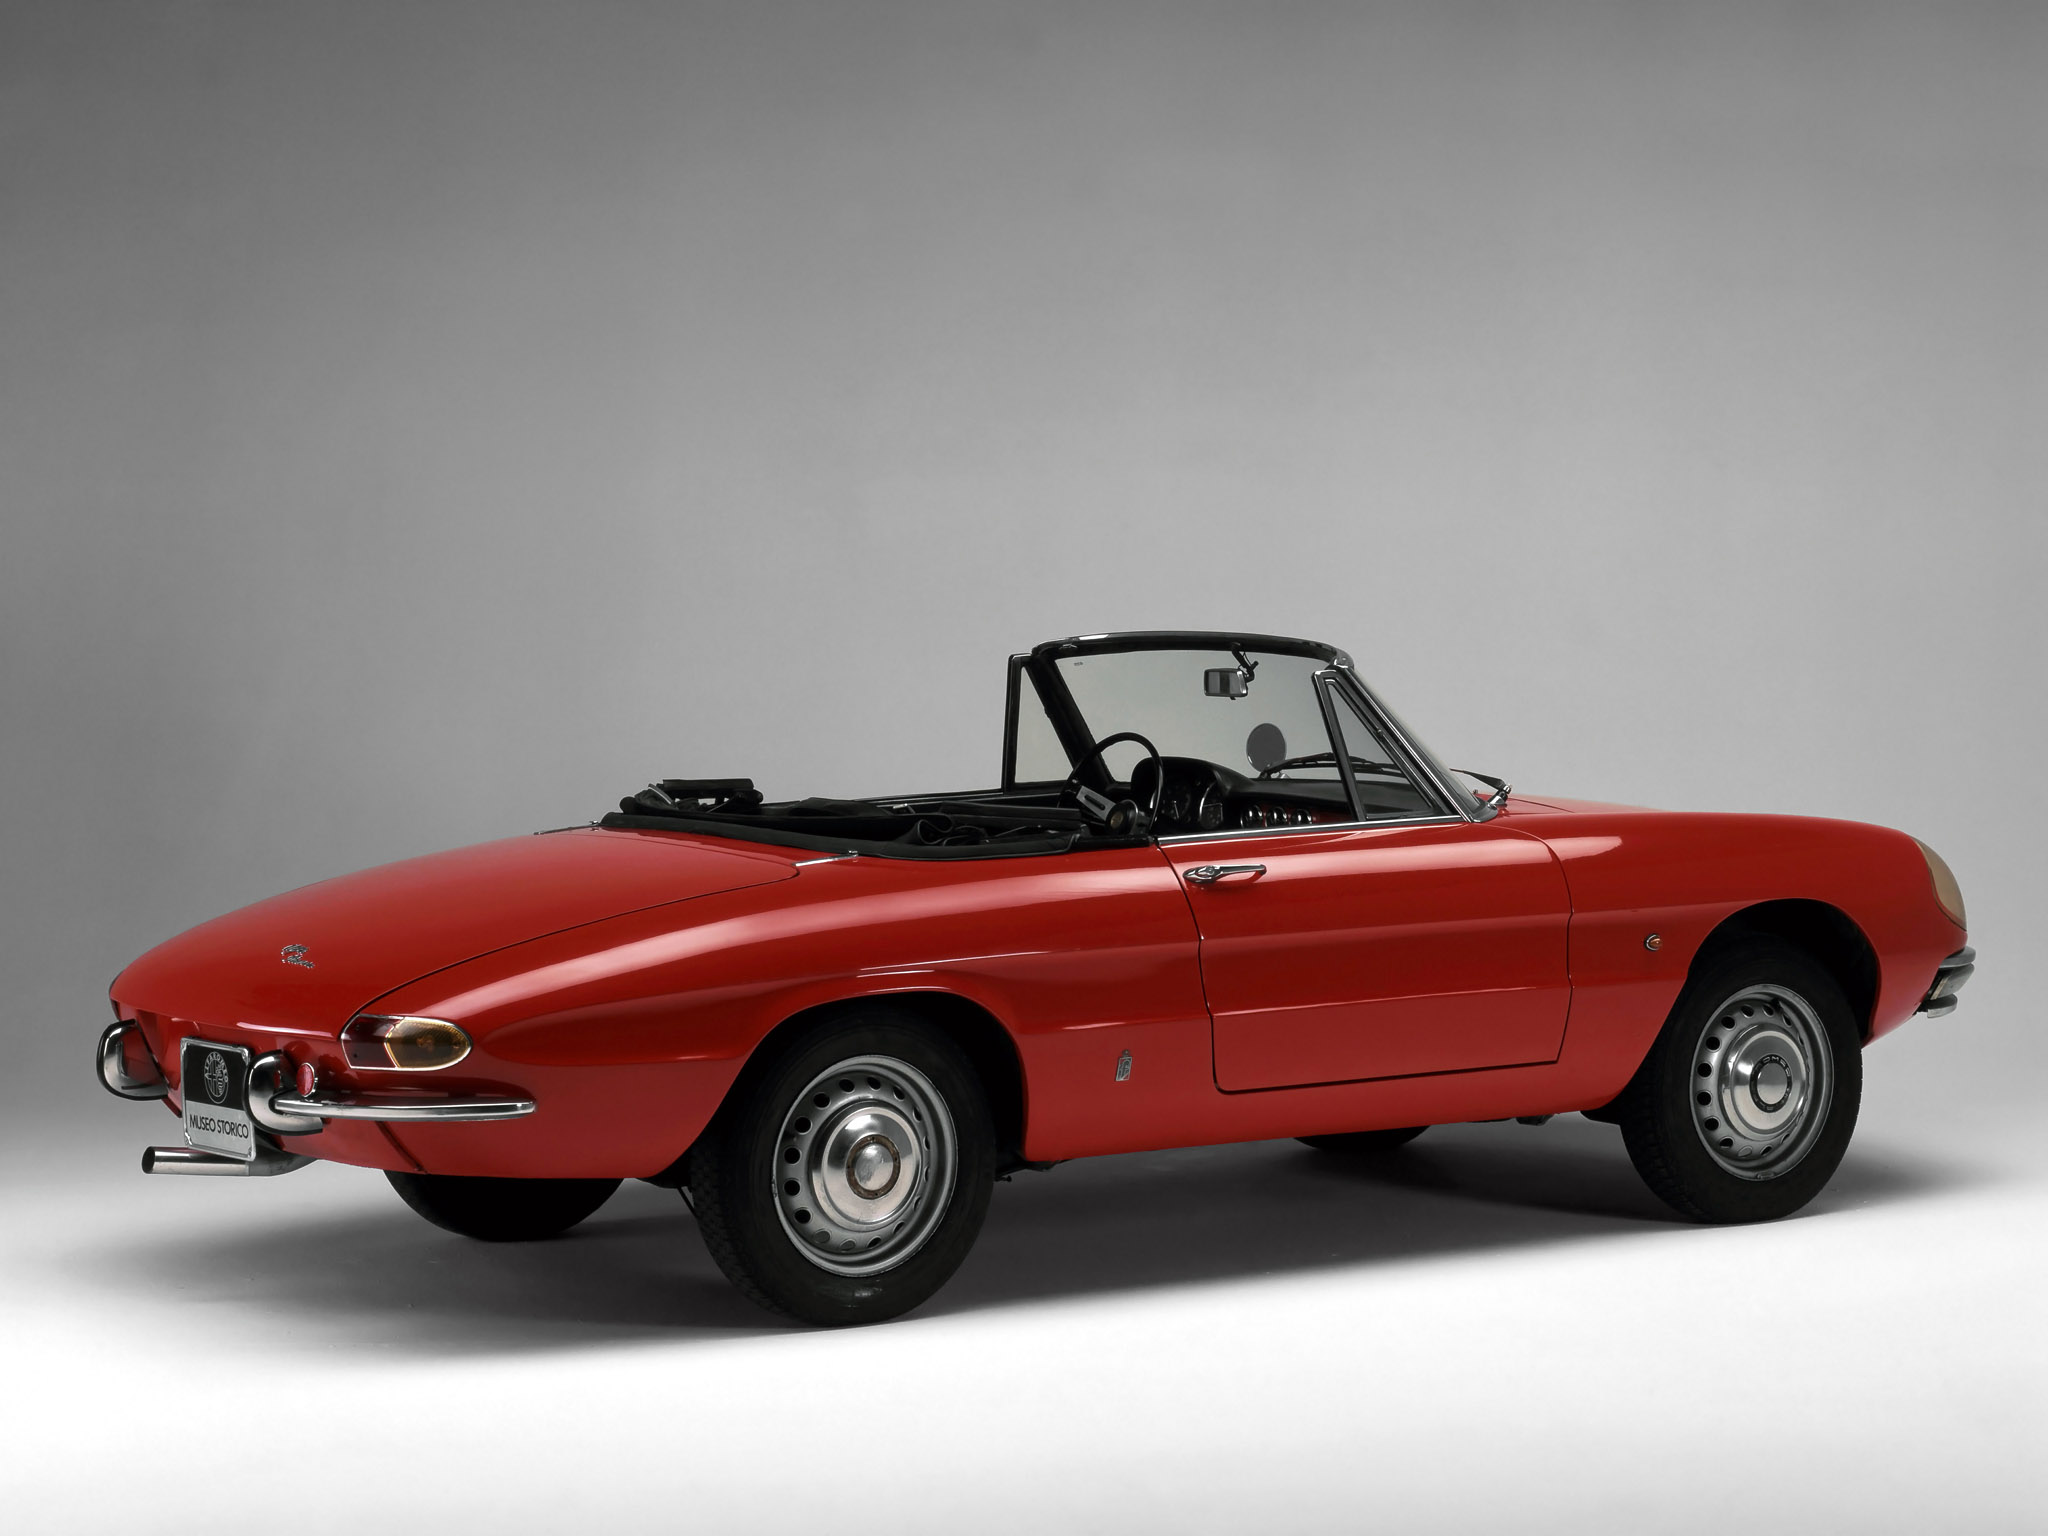 alfa romeo spider duetto 1966 1969 alfa romeo spider duetto 1966 1969 photo 11 car in pictures. Black Bedroom Furniture Sets. Home Design Ideas